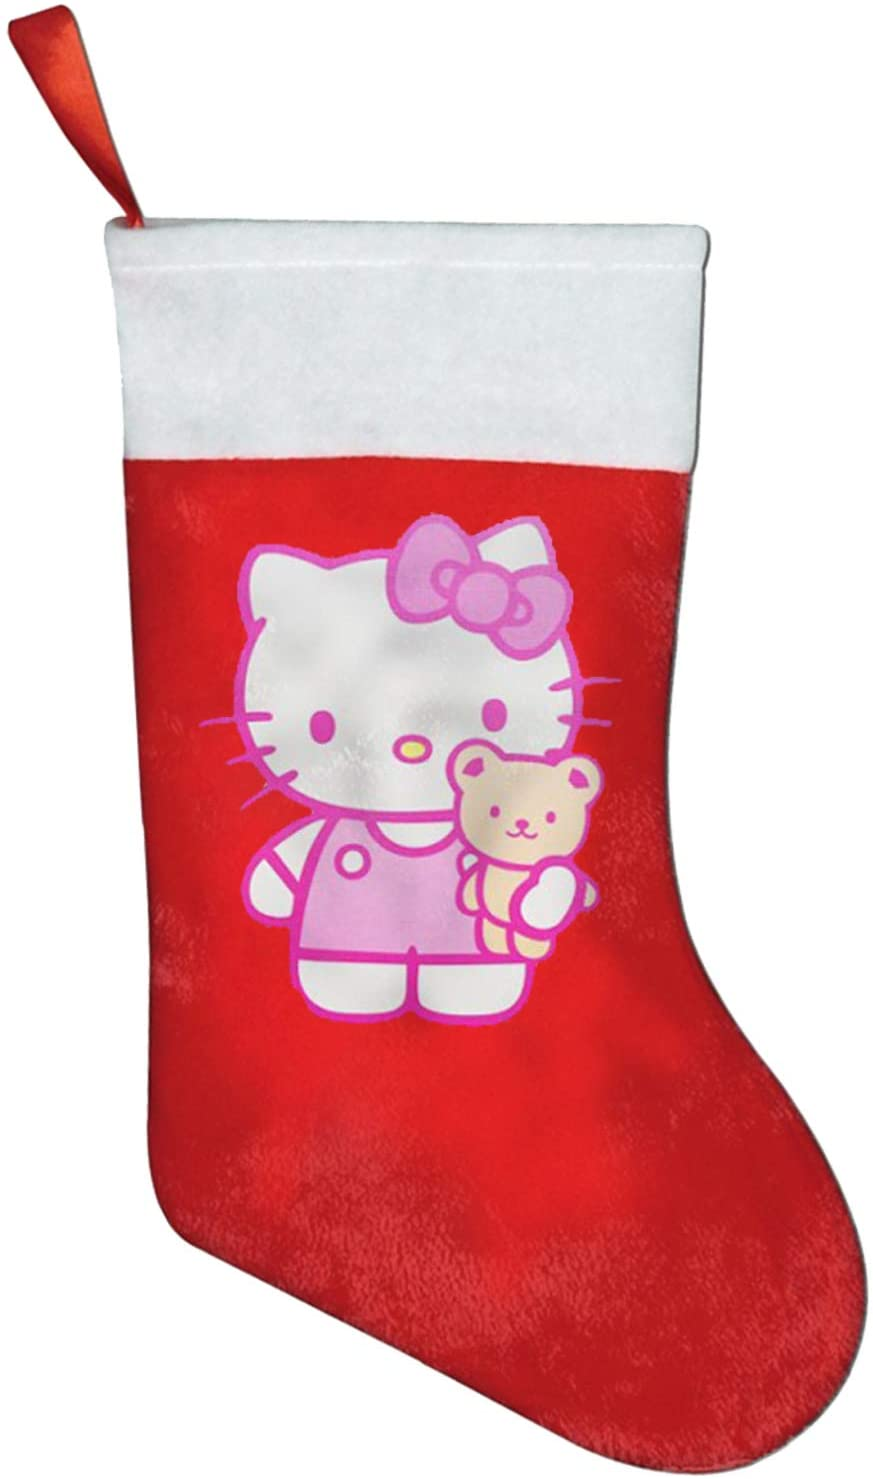 Hello Kitty And Friends Christmas Stockings Santa Socks Decorations Gift Bags Set Party Festival Decoration New Year Gift